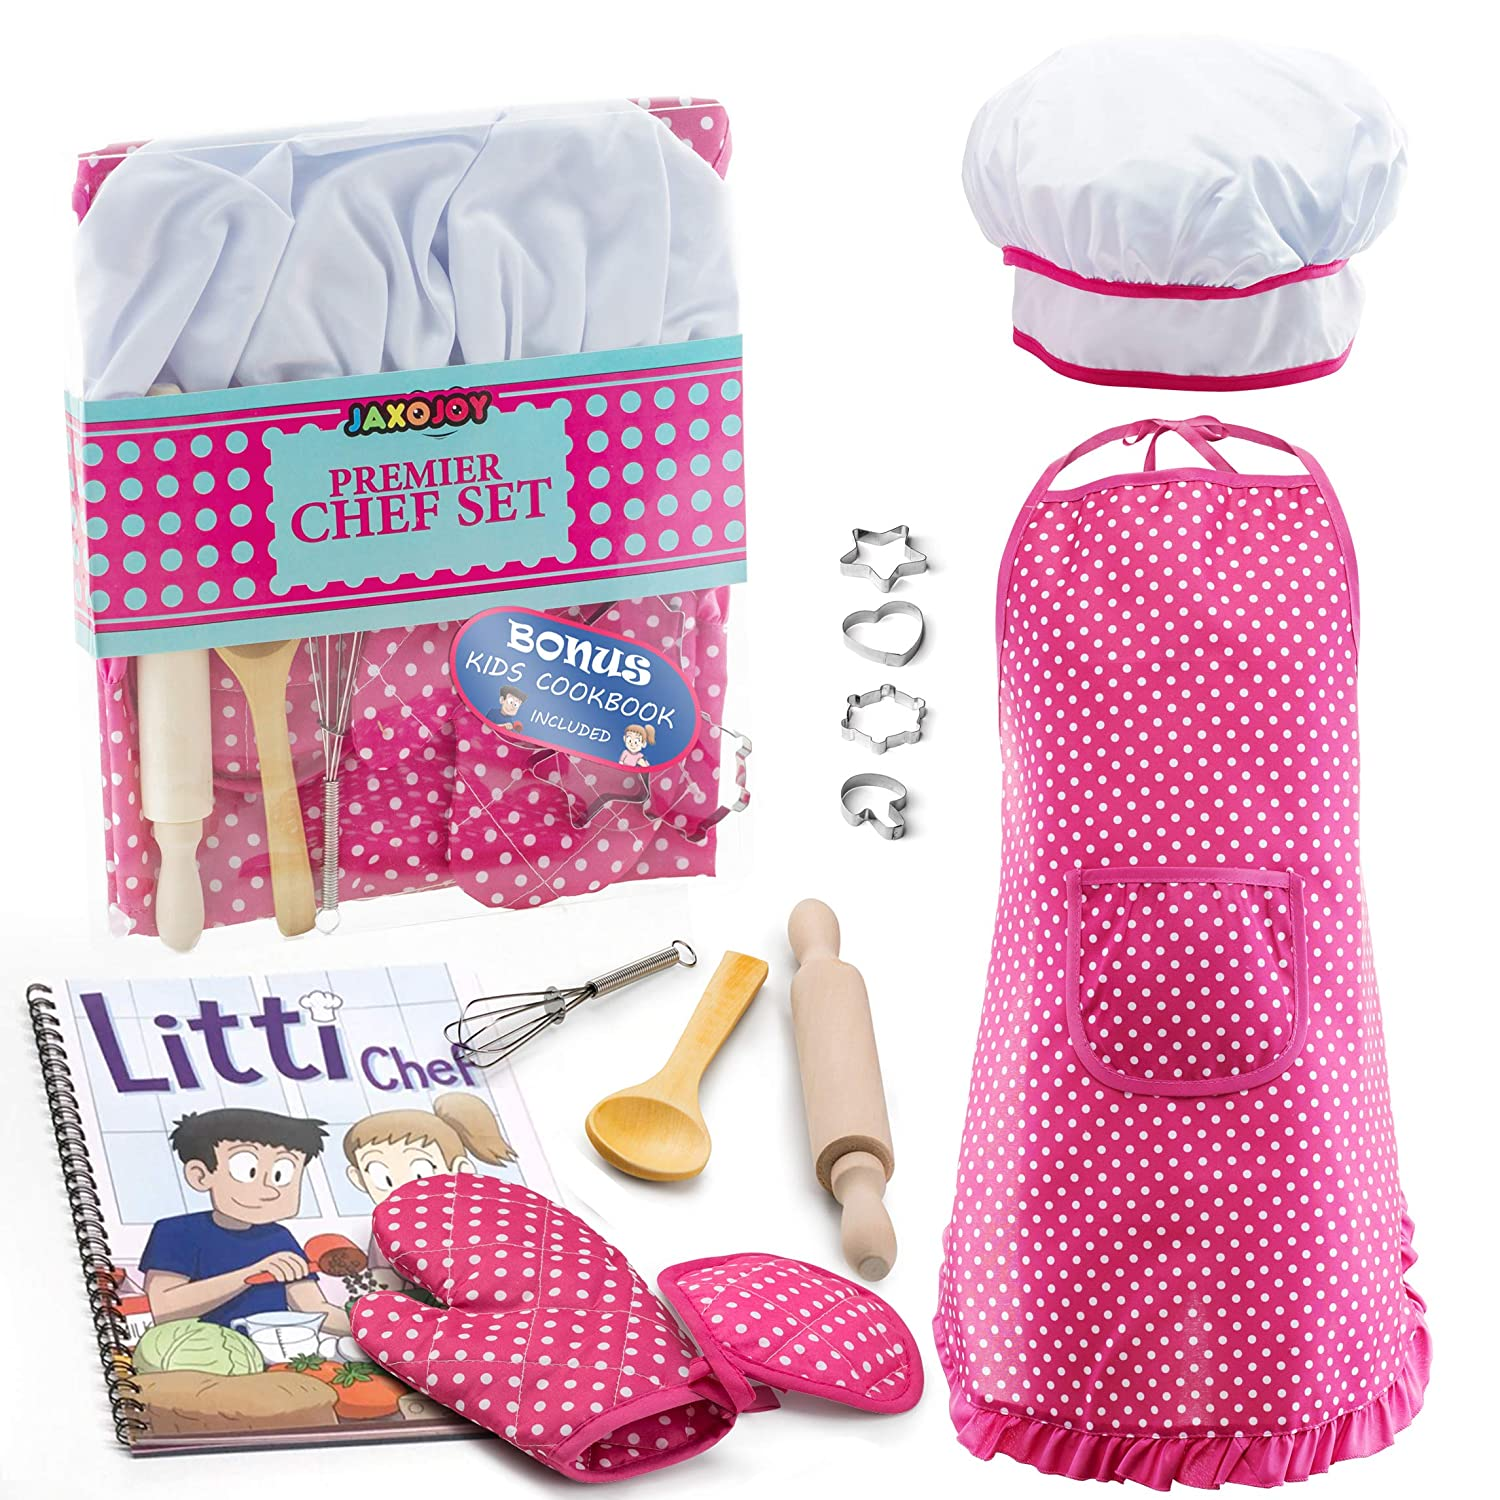 JaxoJoy Complete Kids Cooking and Baking Set - 11 Pcs Includes Apron for Little Girls, Chef Hat, Mitt & Utensil for Toddler Dress Up Chef Costume Career Role Play for 3 Year Old Girls and Up.